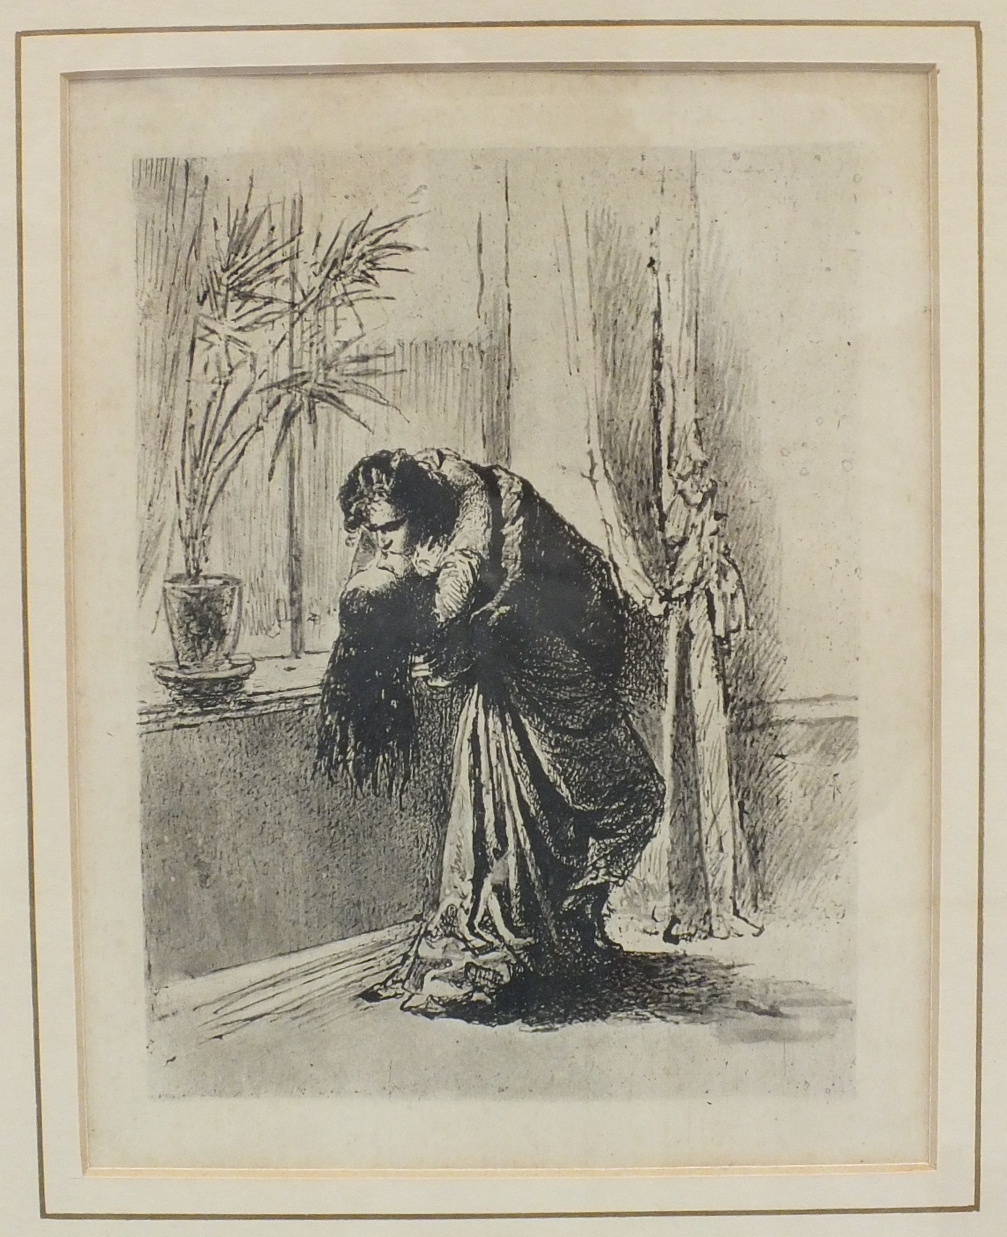 After Zichy, 'Couple embracing in front of window', a framed etching, 20 x 15.5cm.